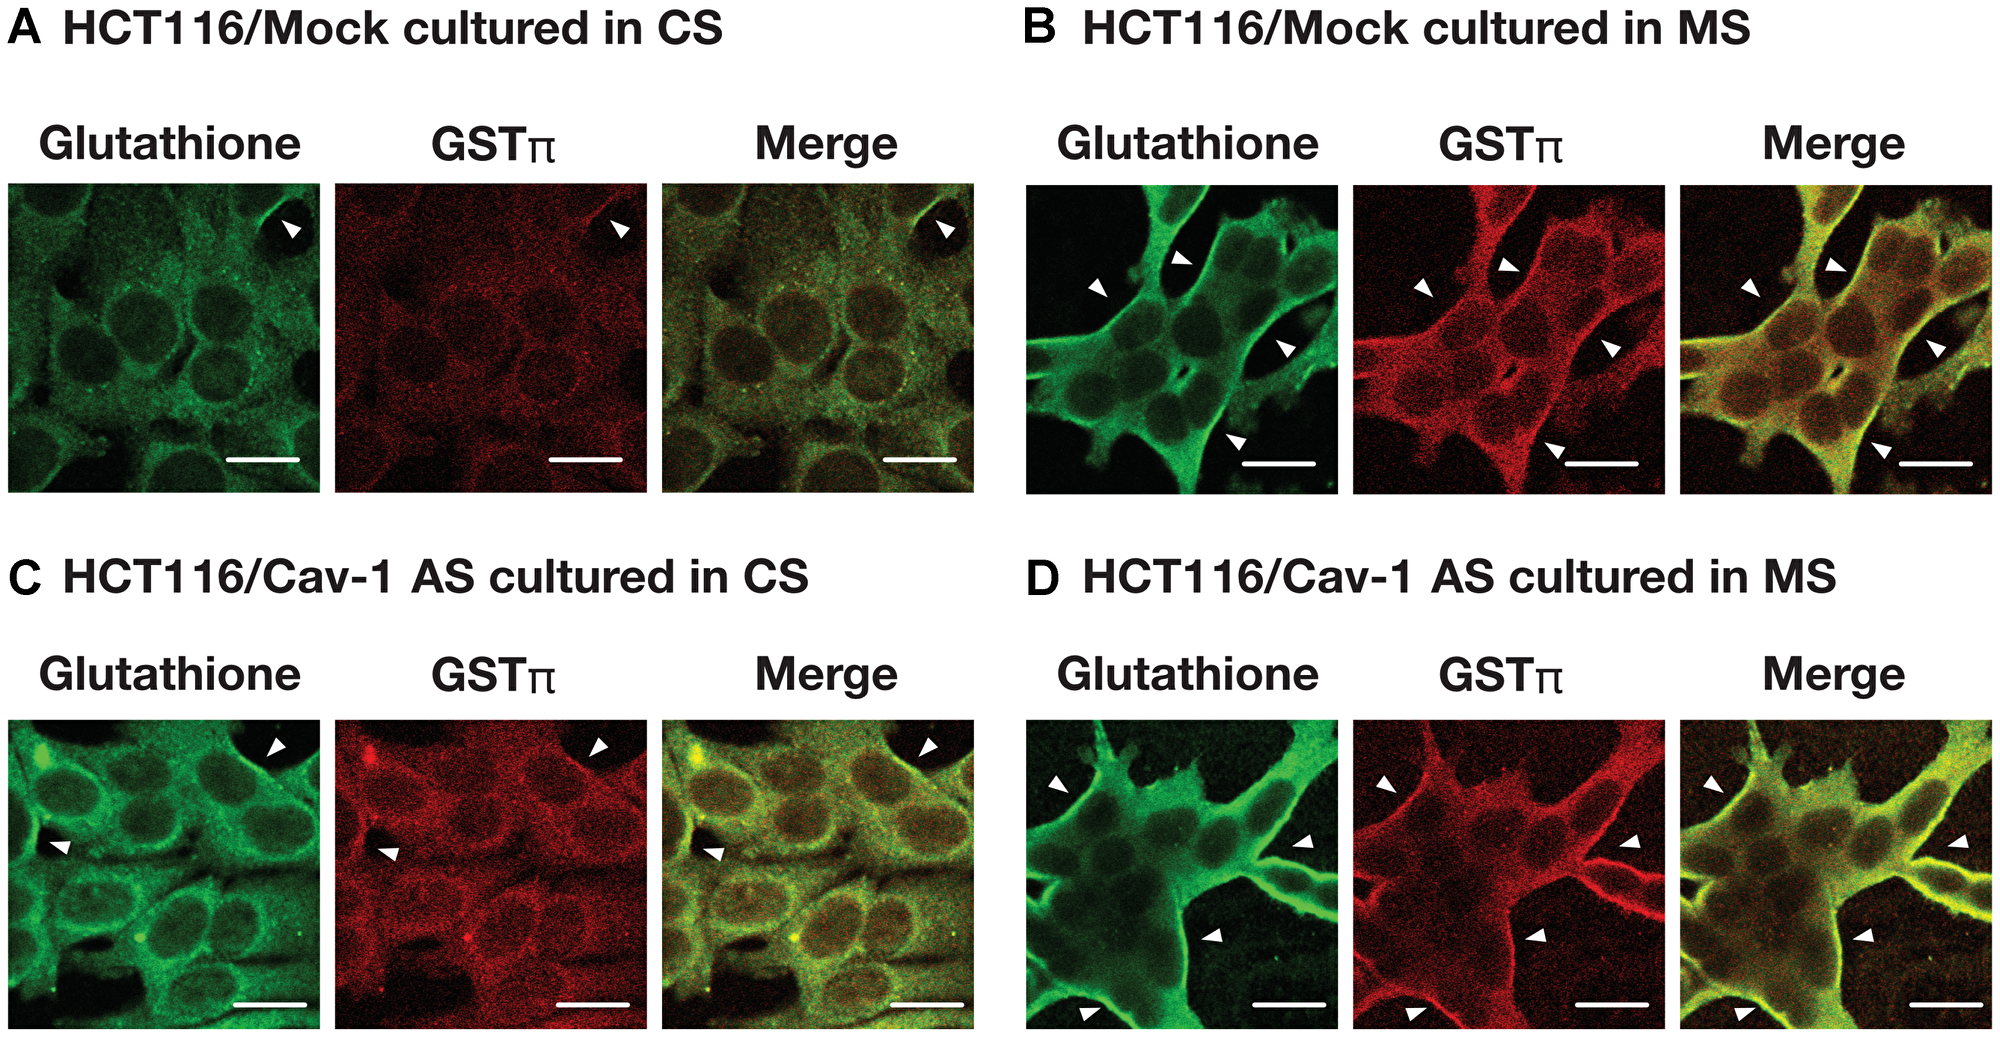 The effect of culture medium on S-glutathionylated protein and GSTπ levels.